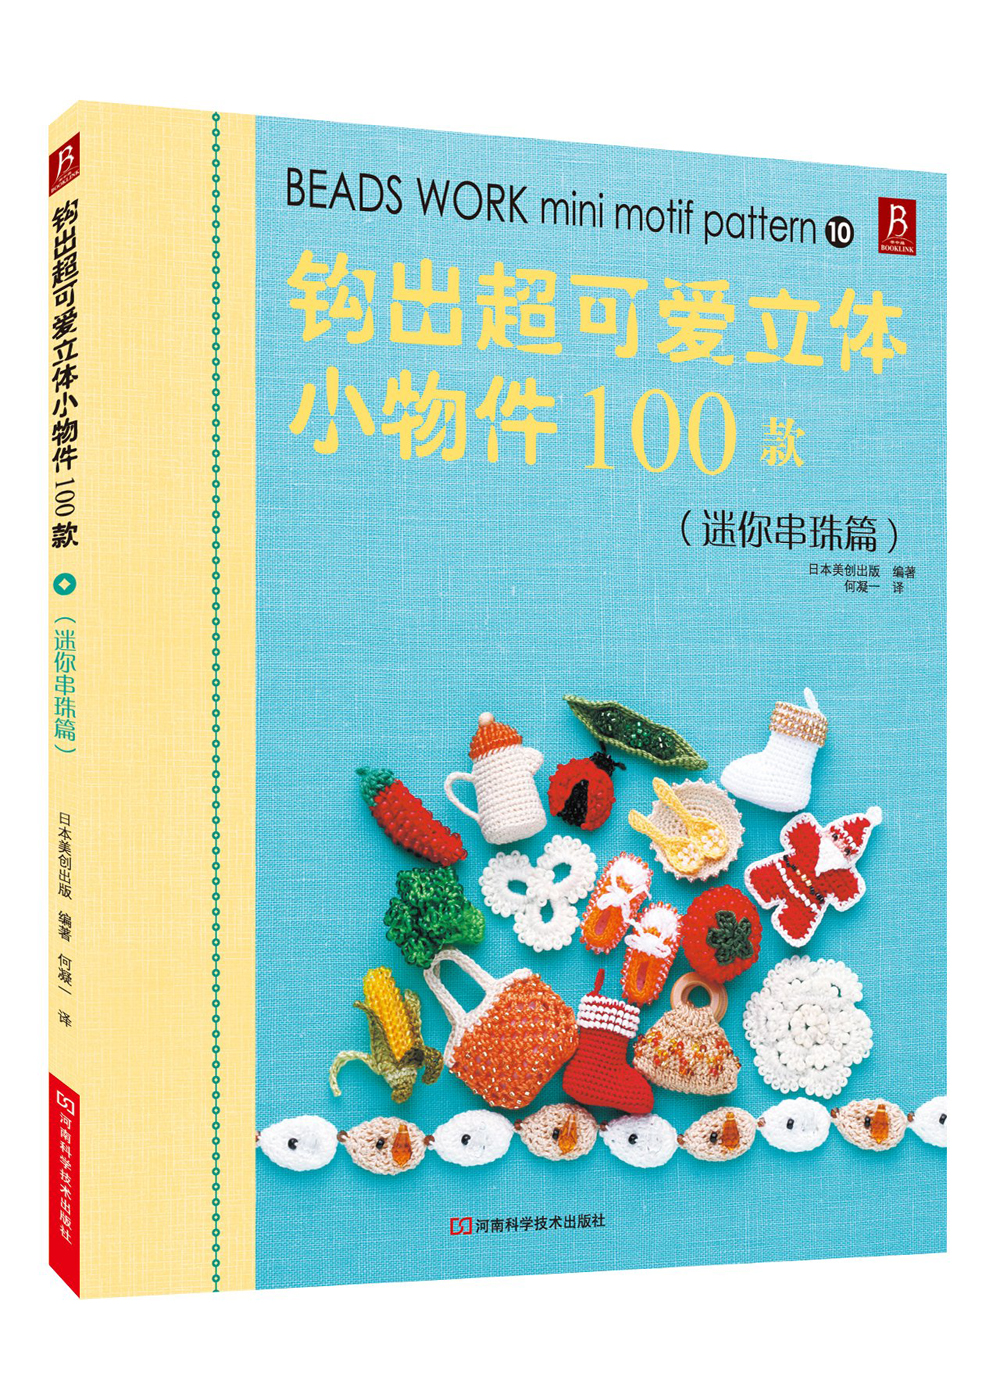 Beads Work Mini Motif Pattern / Weaving super-cute 3d small objects 100 models Chinese knitting book / 3D Handmade Carft Book 100 super cute little embroidery chinese embroidery handmade art design book